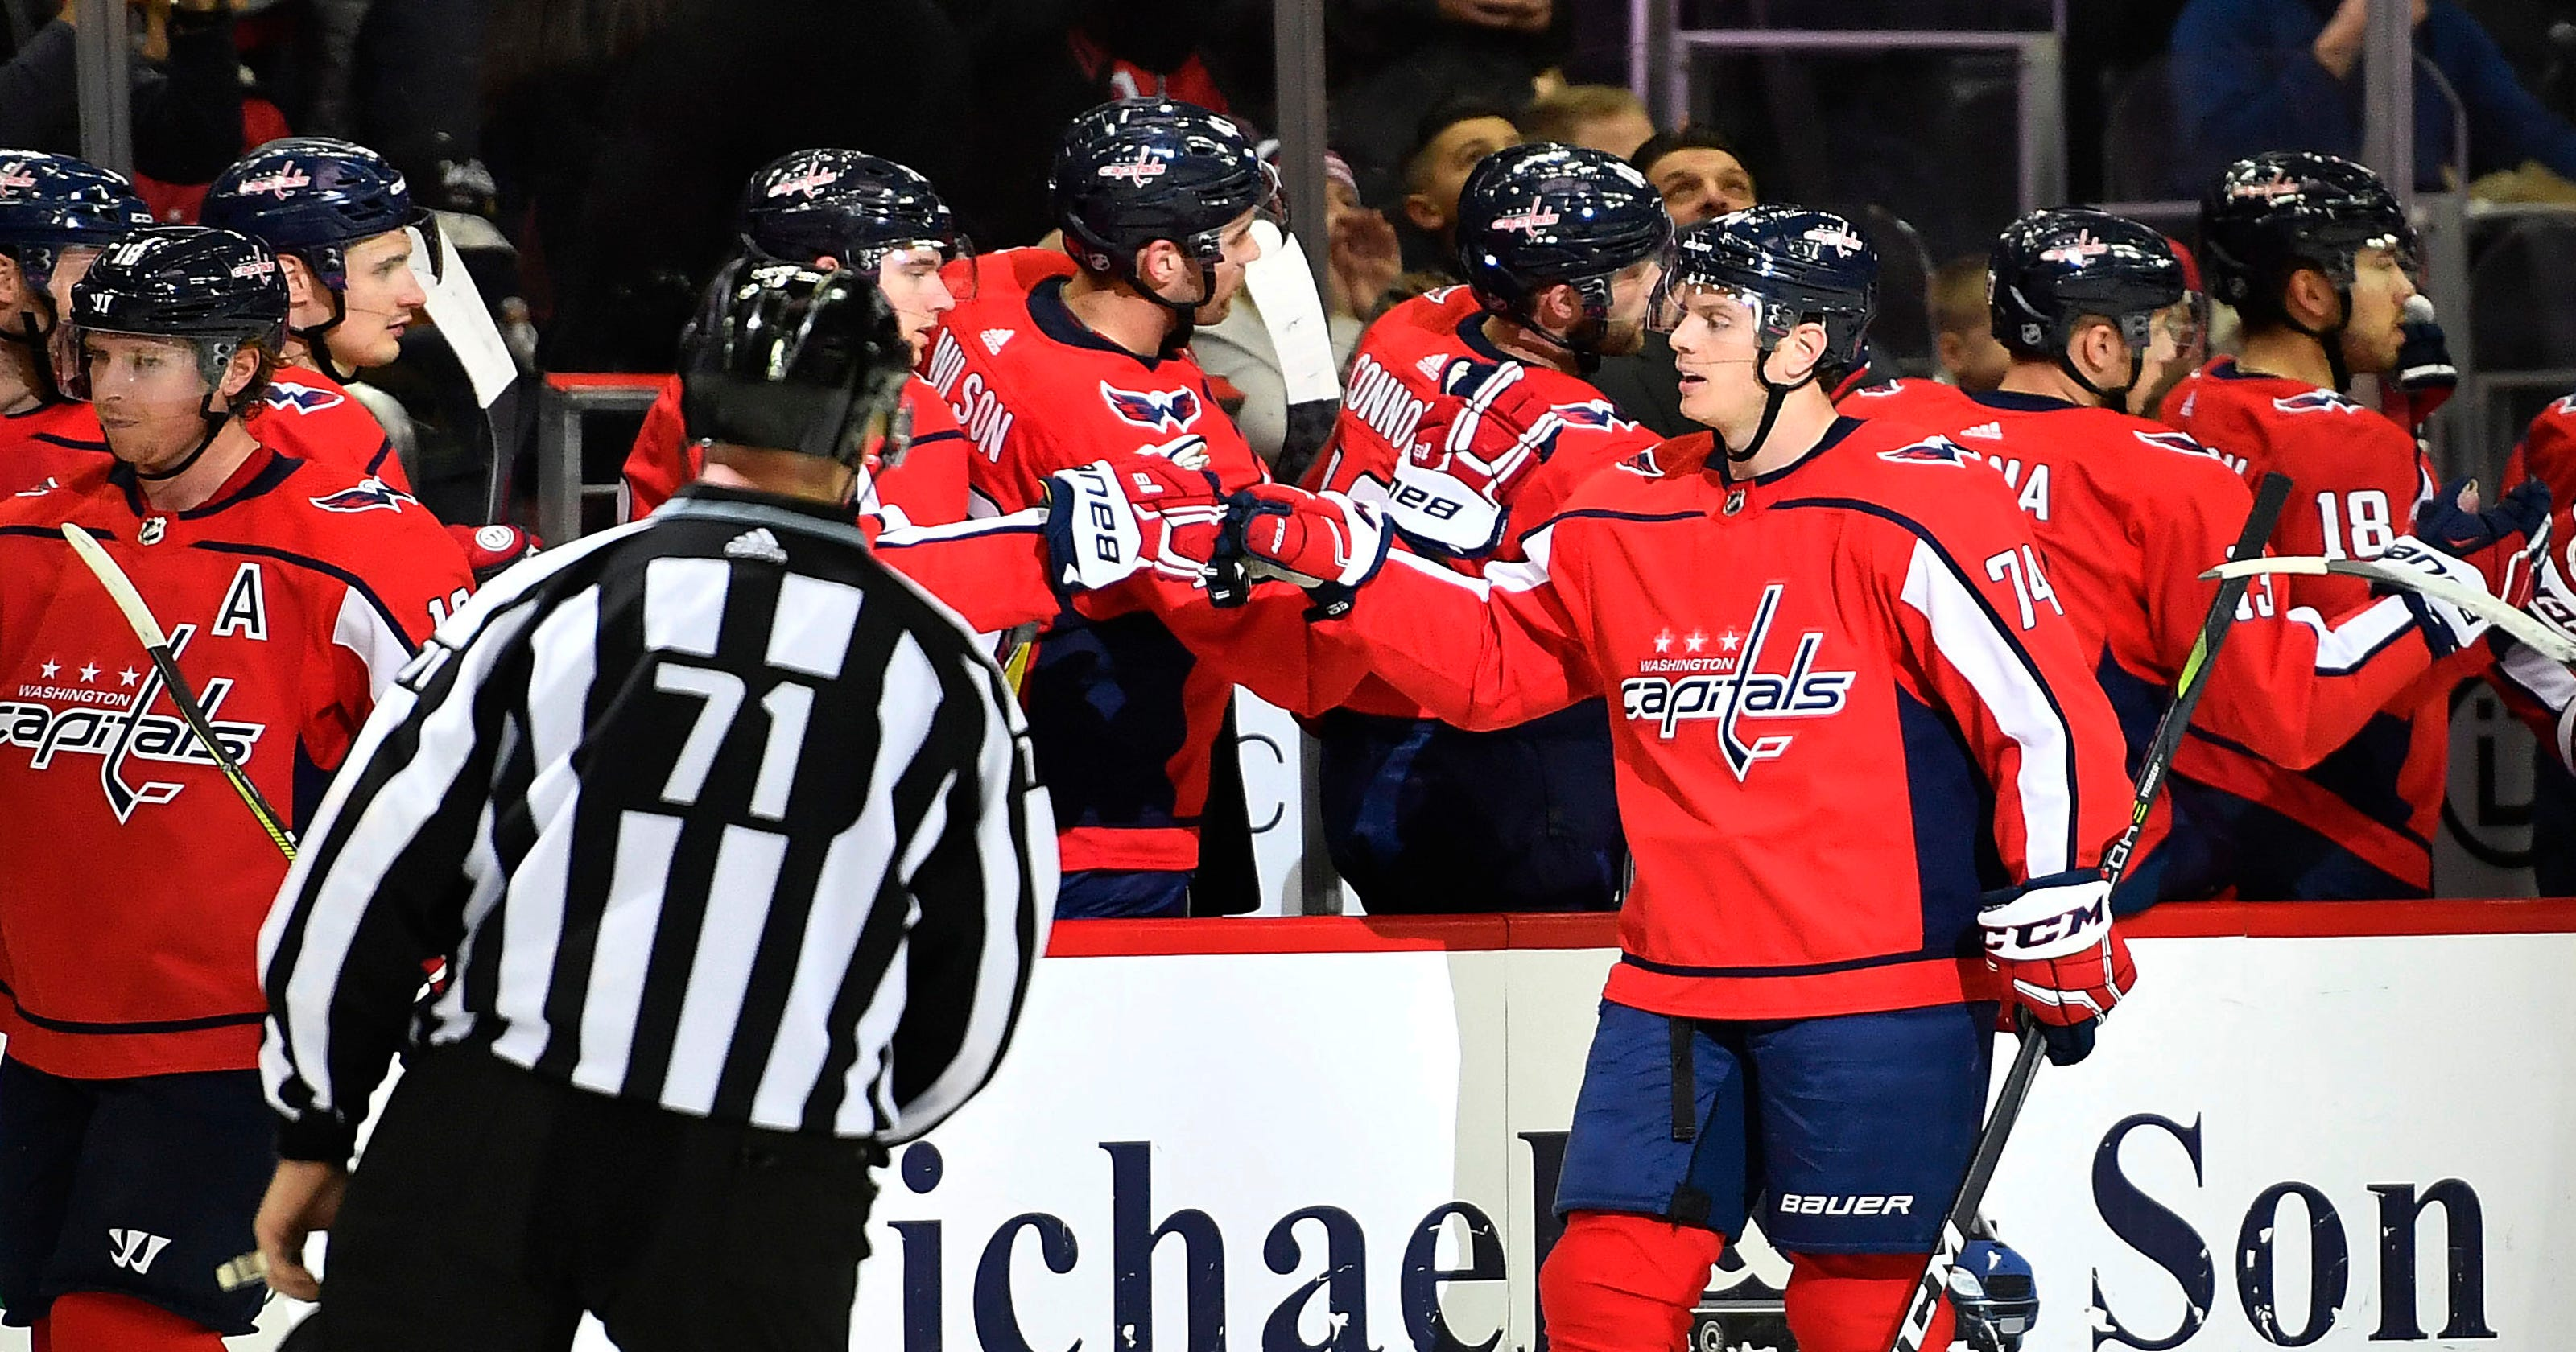 c393a5ca4 Washington Capitals beat New Jersey Devils to take lead in Metropolitan  Division